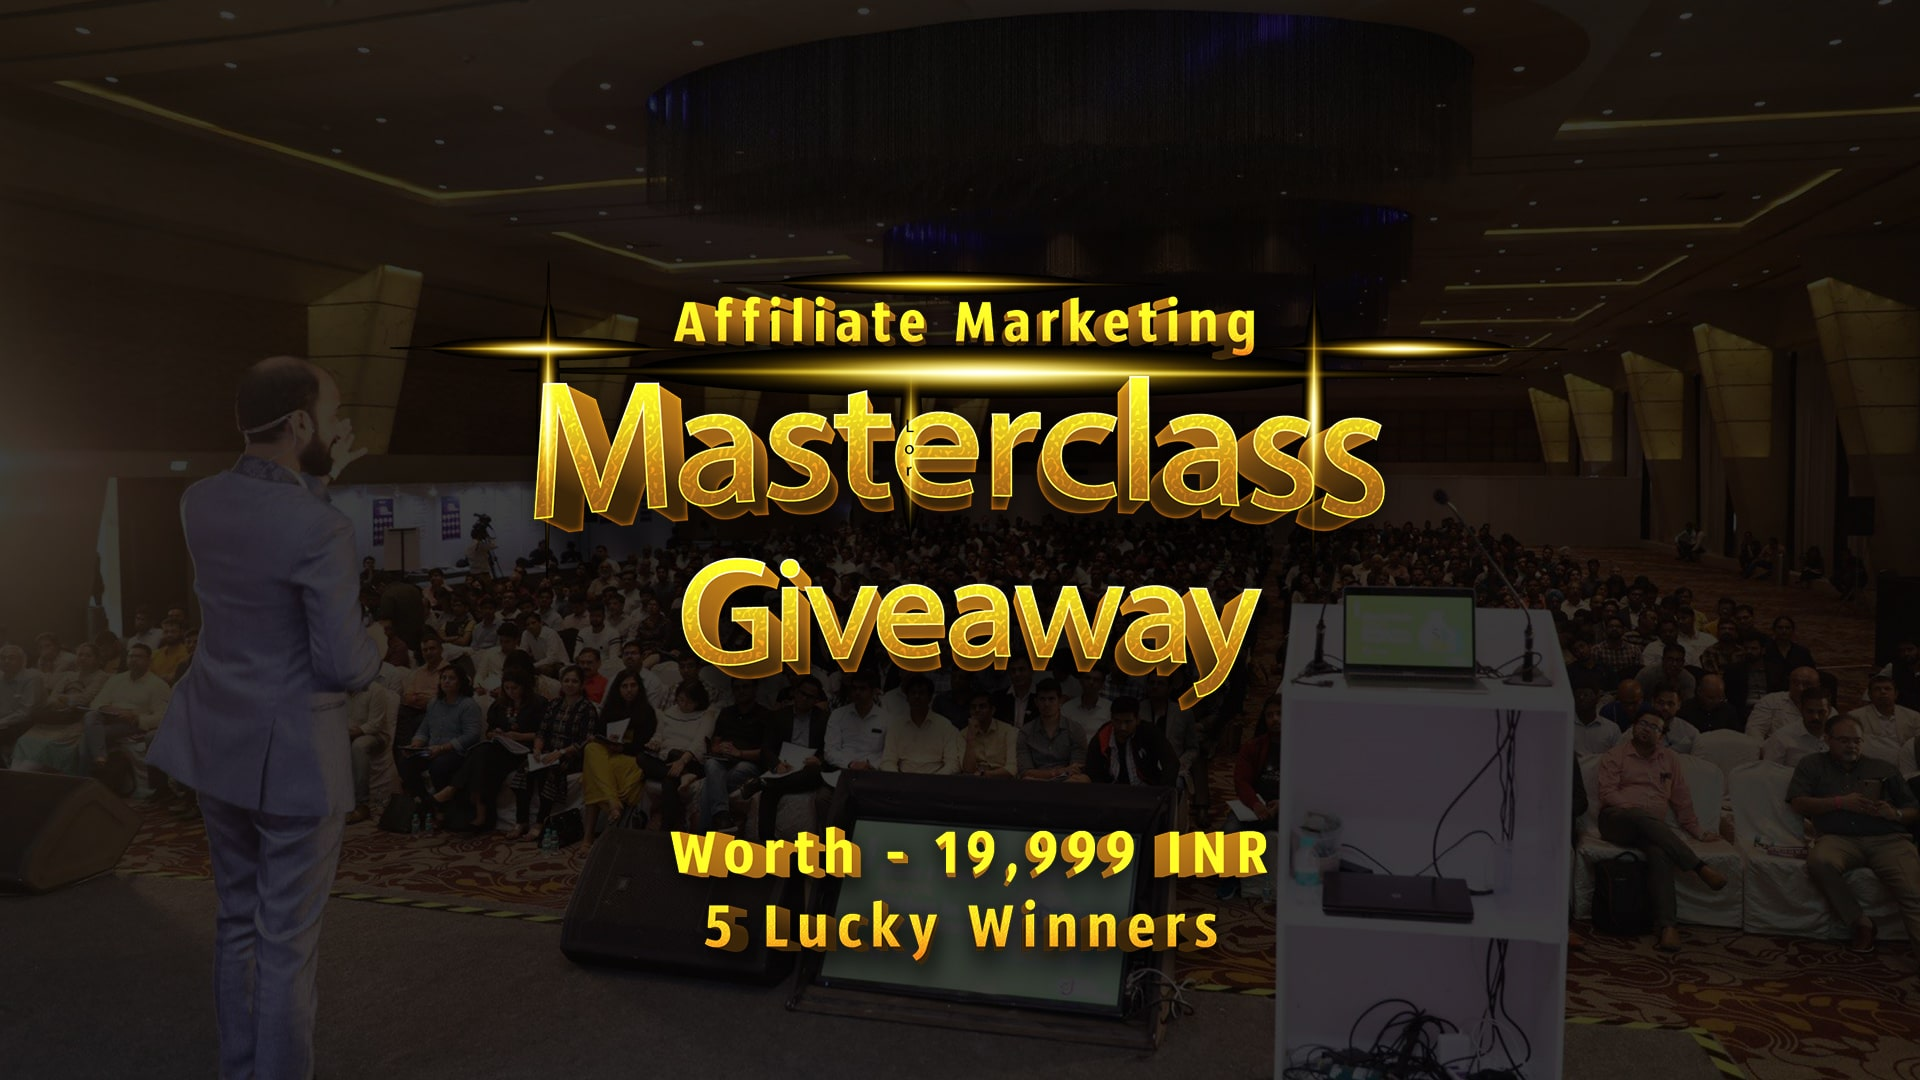 Affiliate Masterclass Giveaway - Win Premium Training Worth 19,999 INR 1